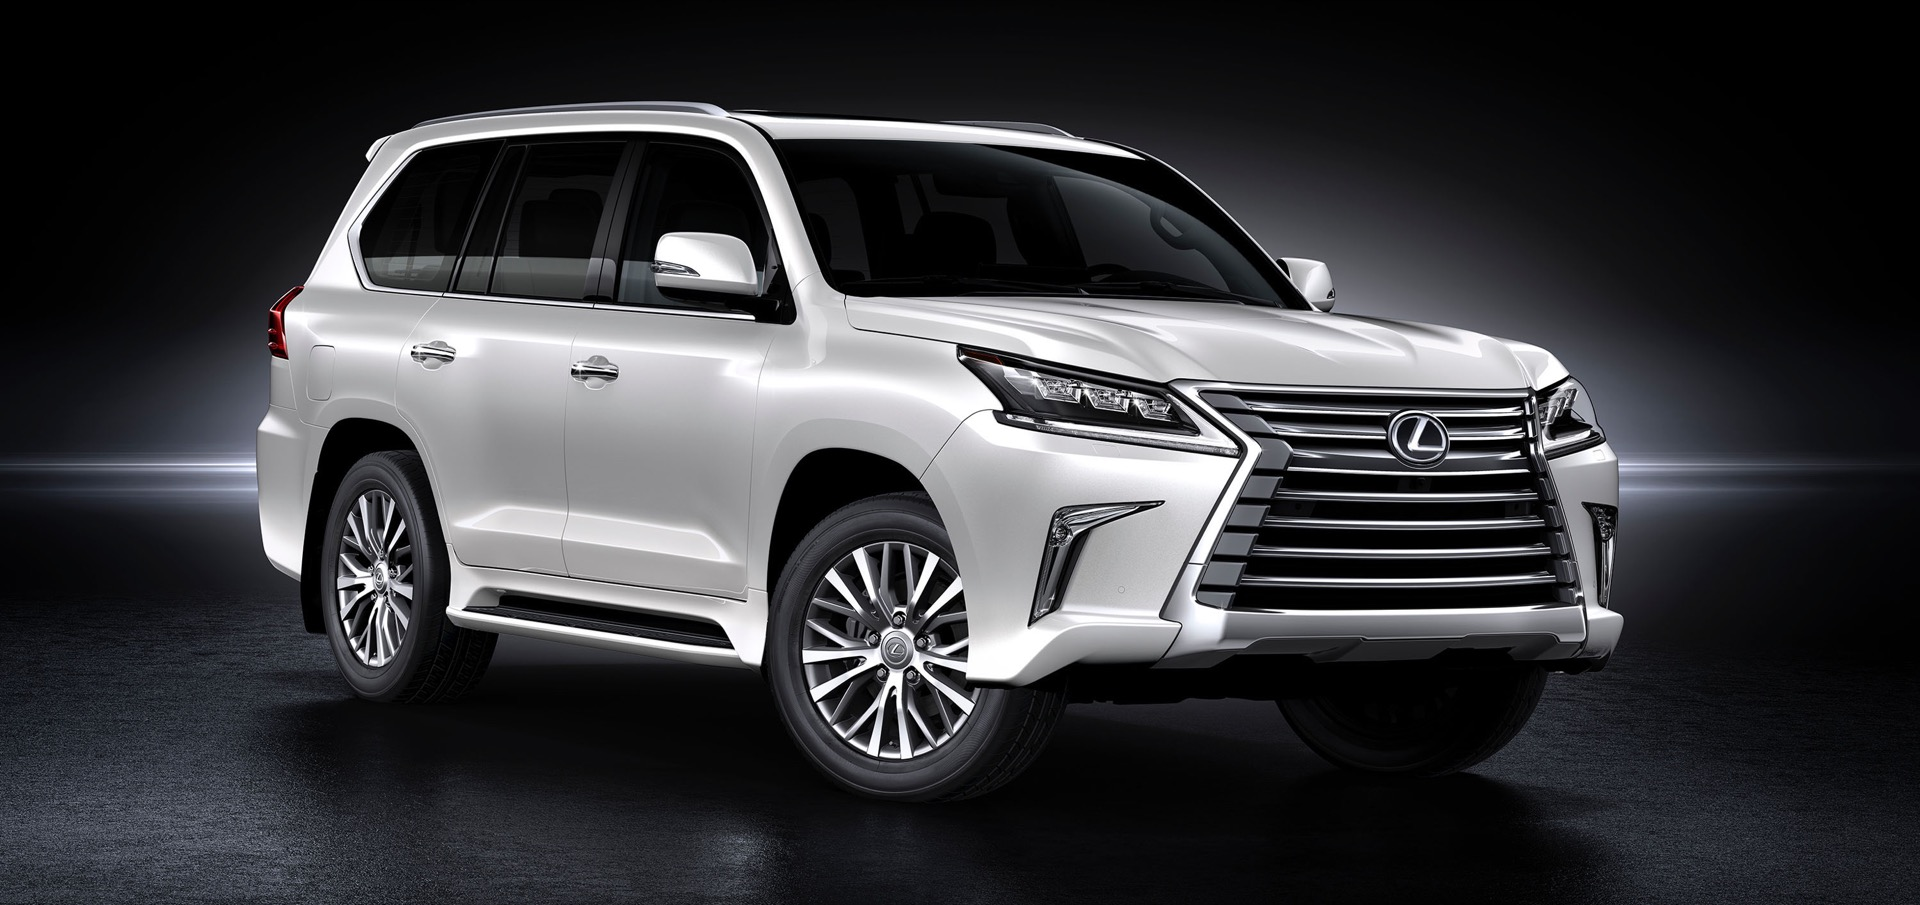 Tesla Suv Specs >> 2016 Lexus LX Review, Ratings, Specs, Prices, and Photos - The Car Connection